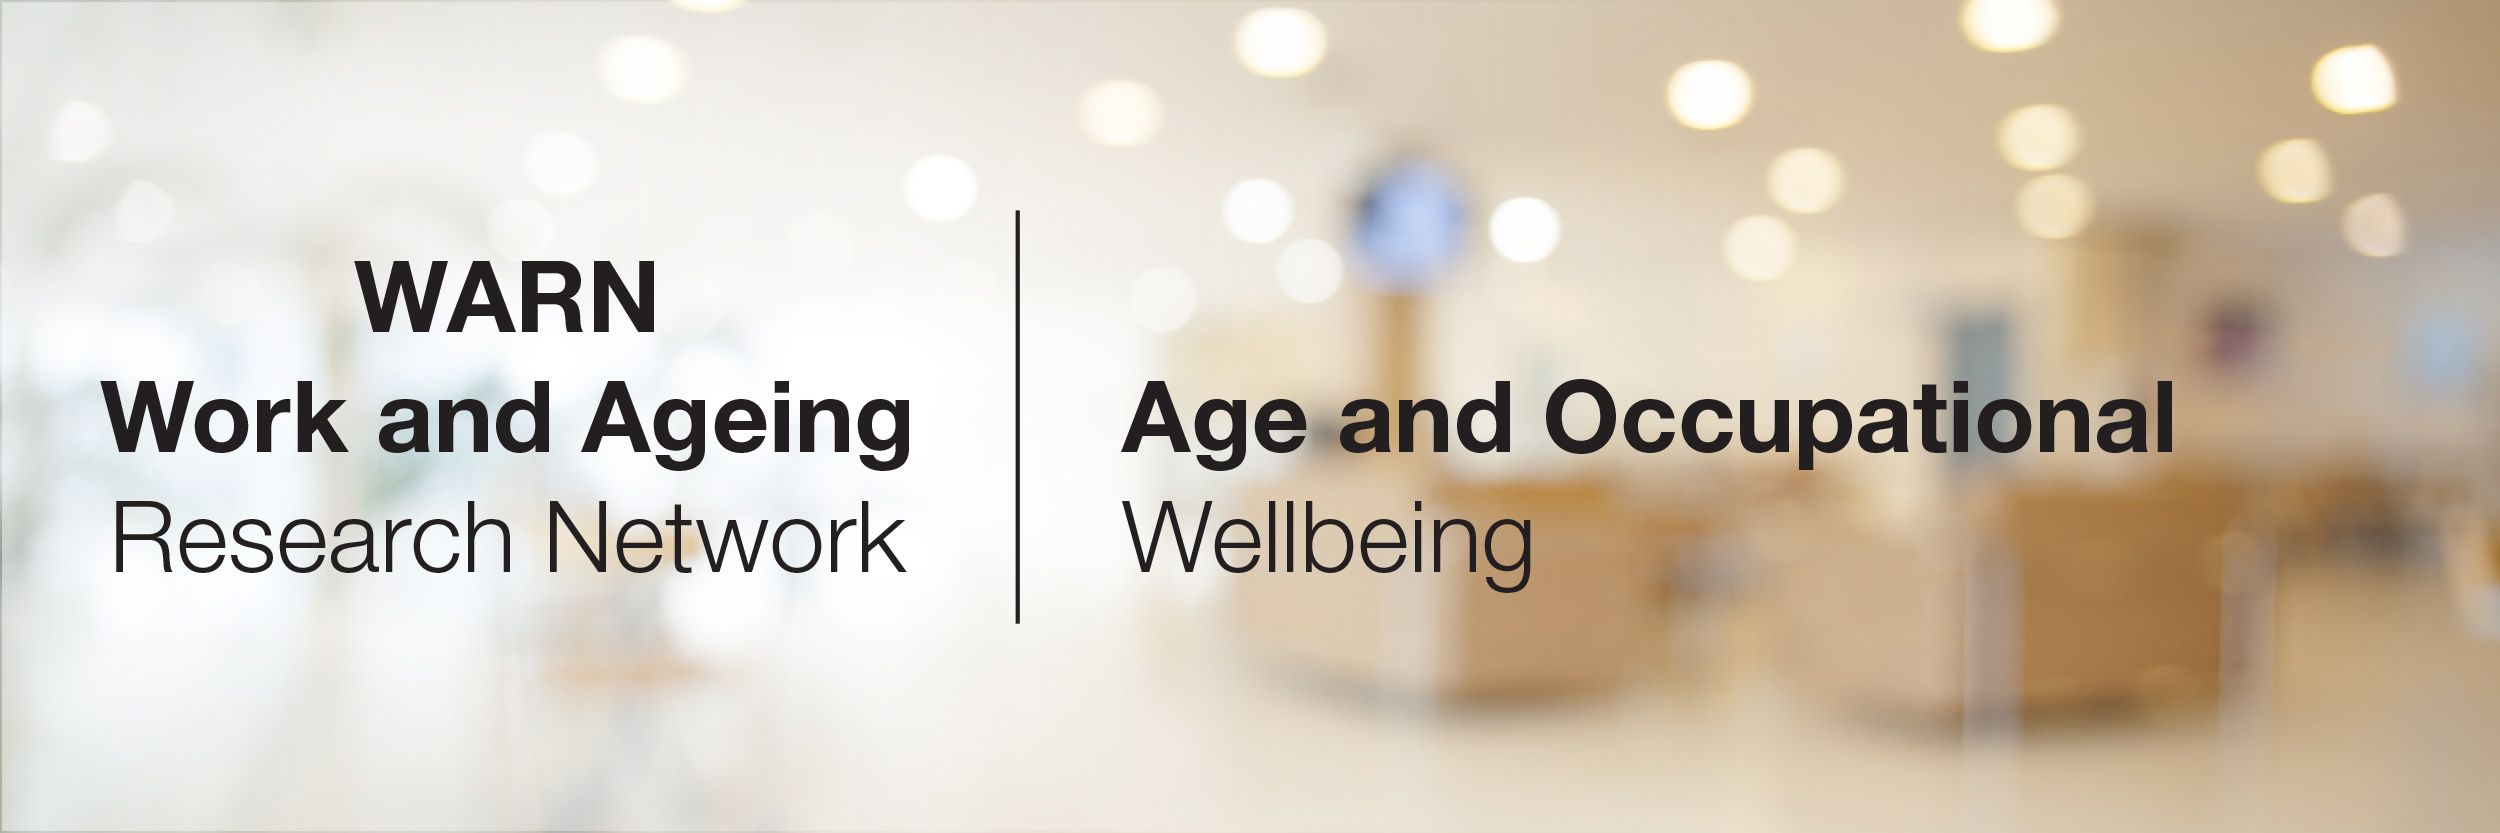 Age and occupational wellbeing